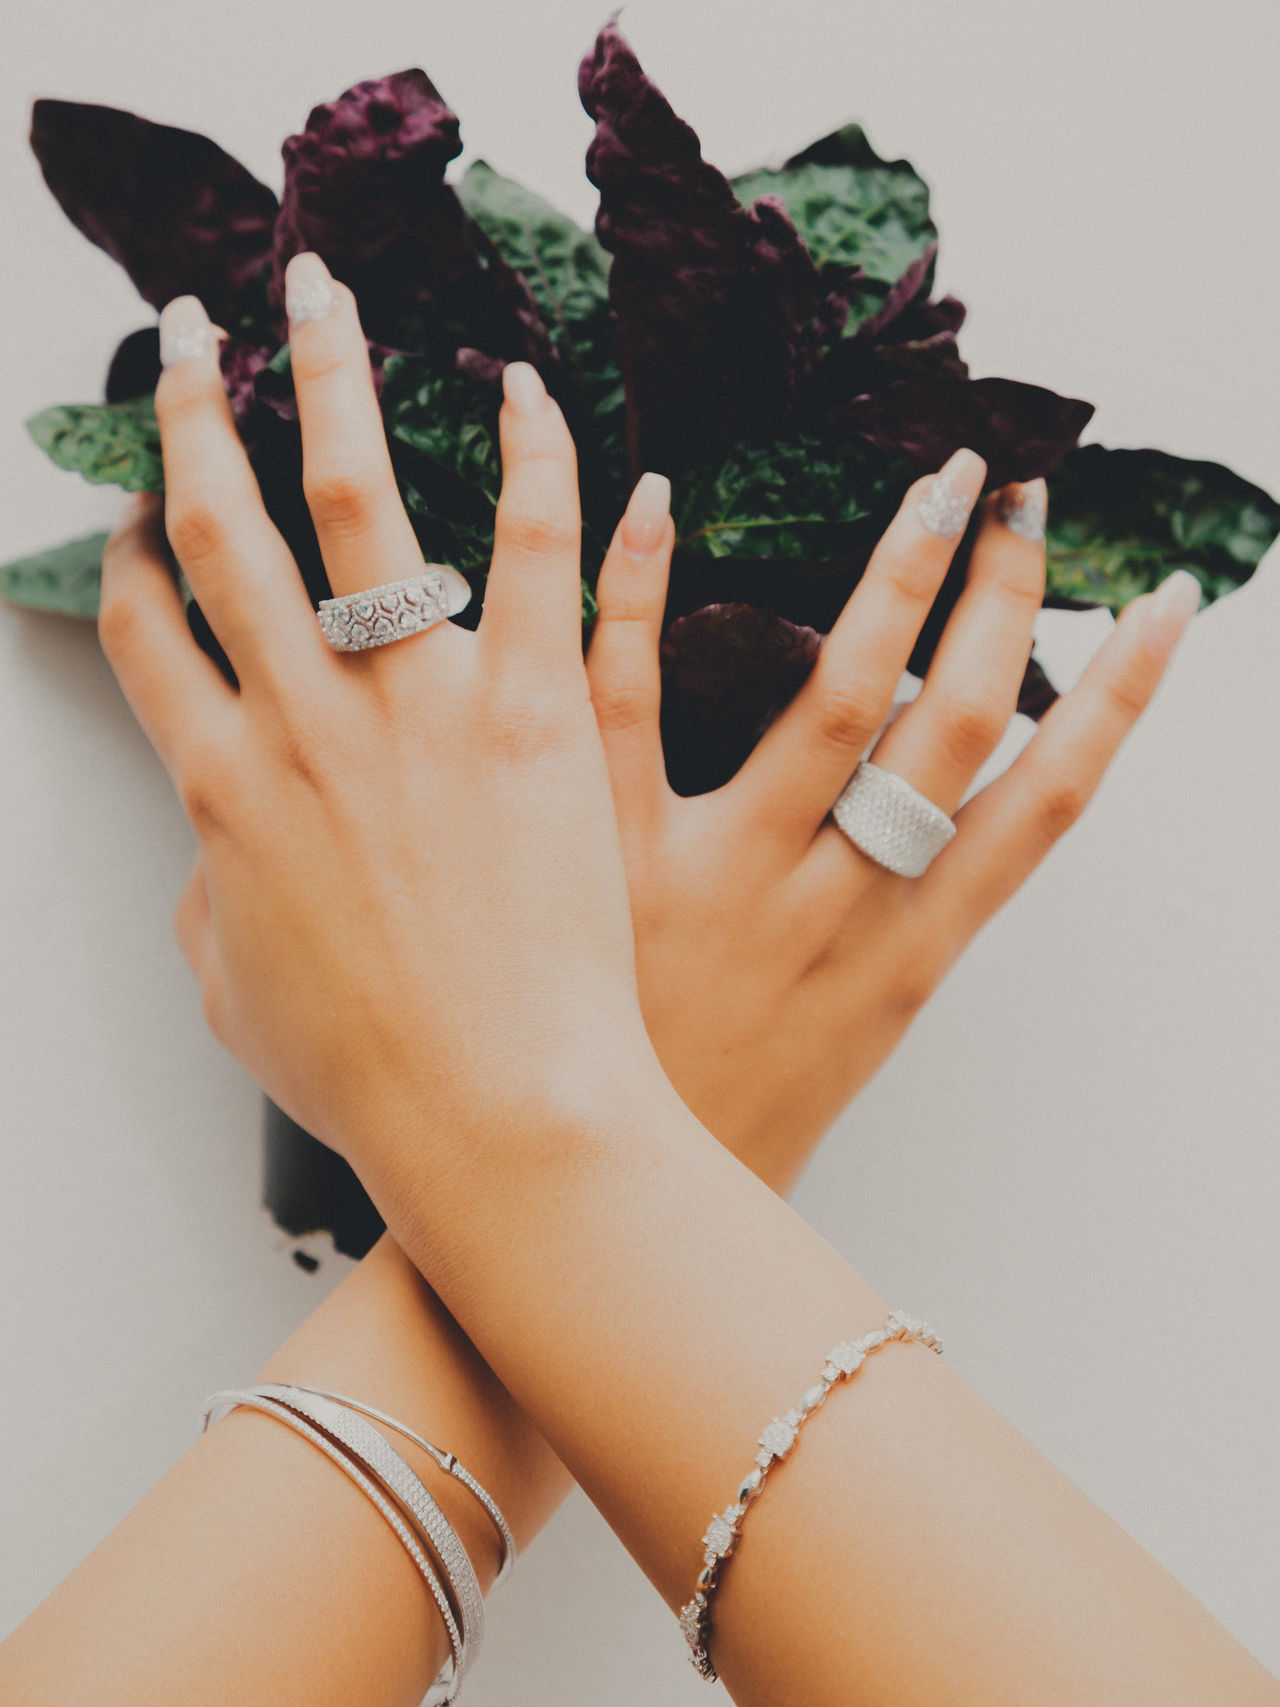 Adult Bangle Close-up Day Diamond Rings Food Freshness Holding Human Body Part Human Hand Indoors  Lifestyles Low Section One Person People Real People Rings White Background Women Young Adult